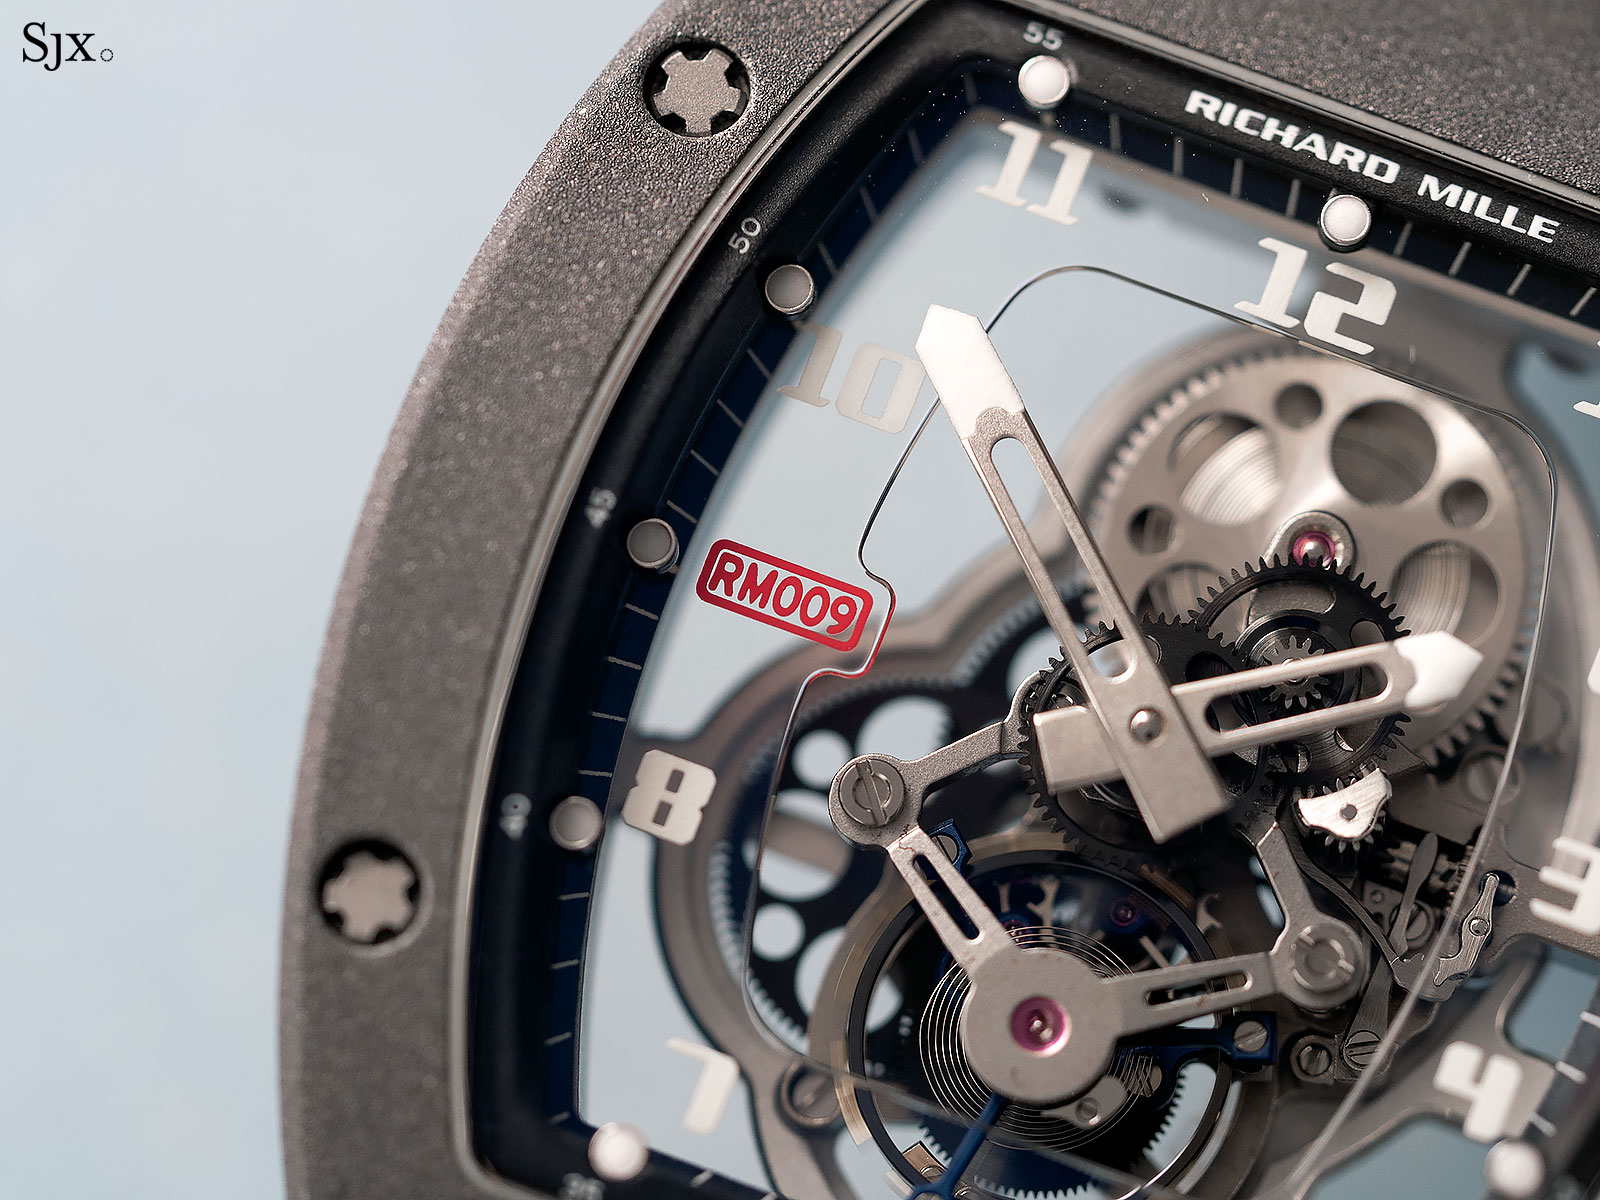 Richard Mille RM009 Alusic tourbillon 2